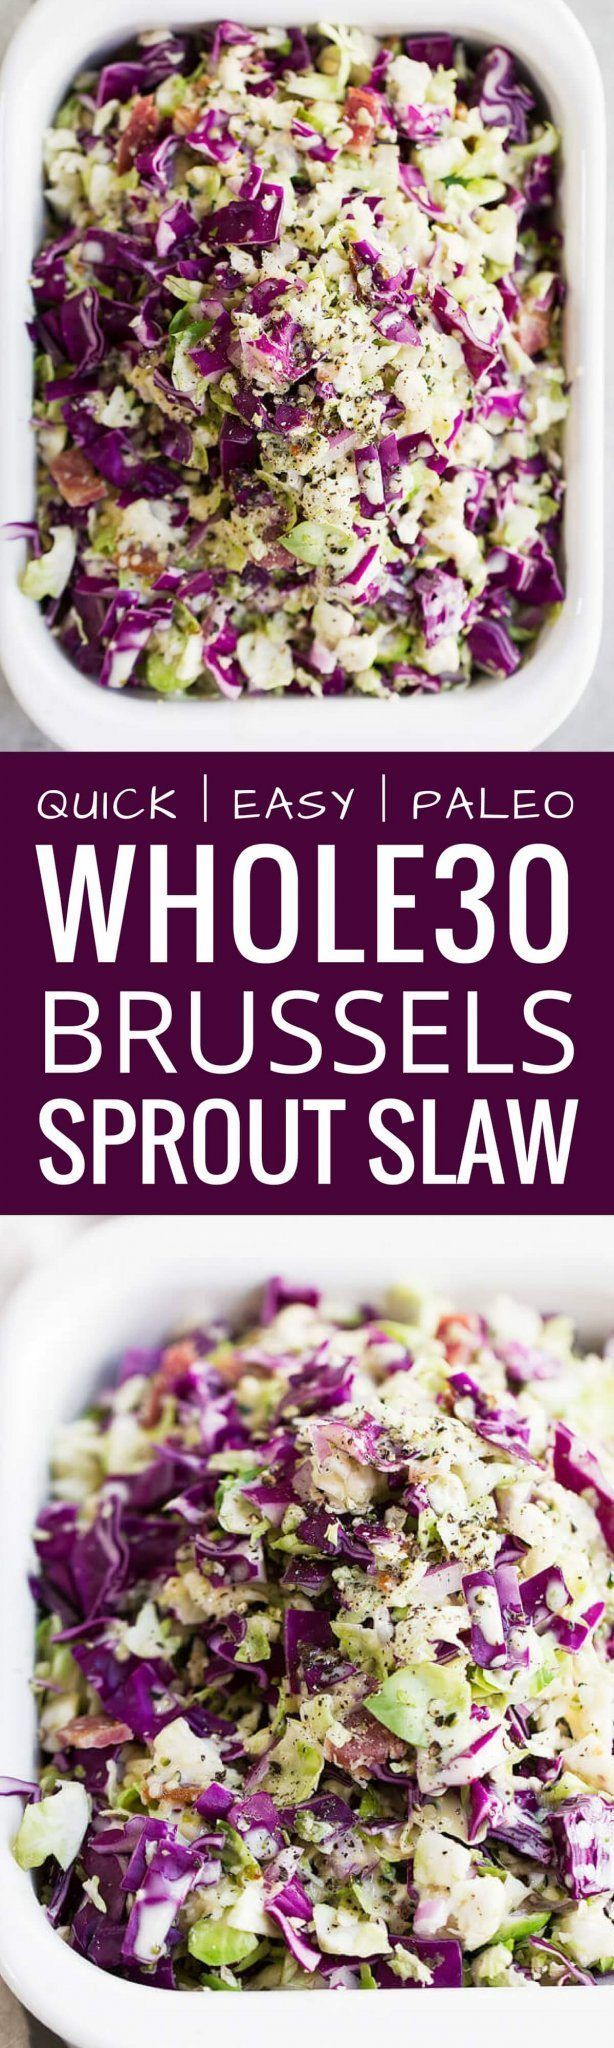 Paleo Brussels Sprout Slaw recipe. The BEST brusse�